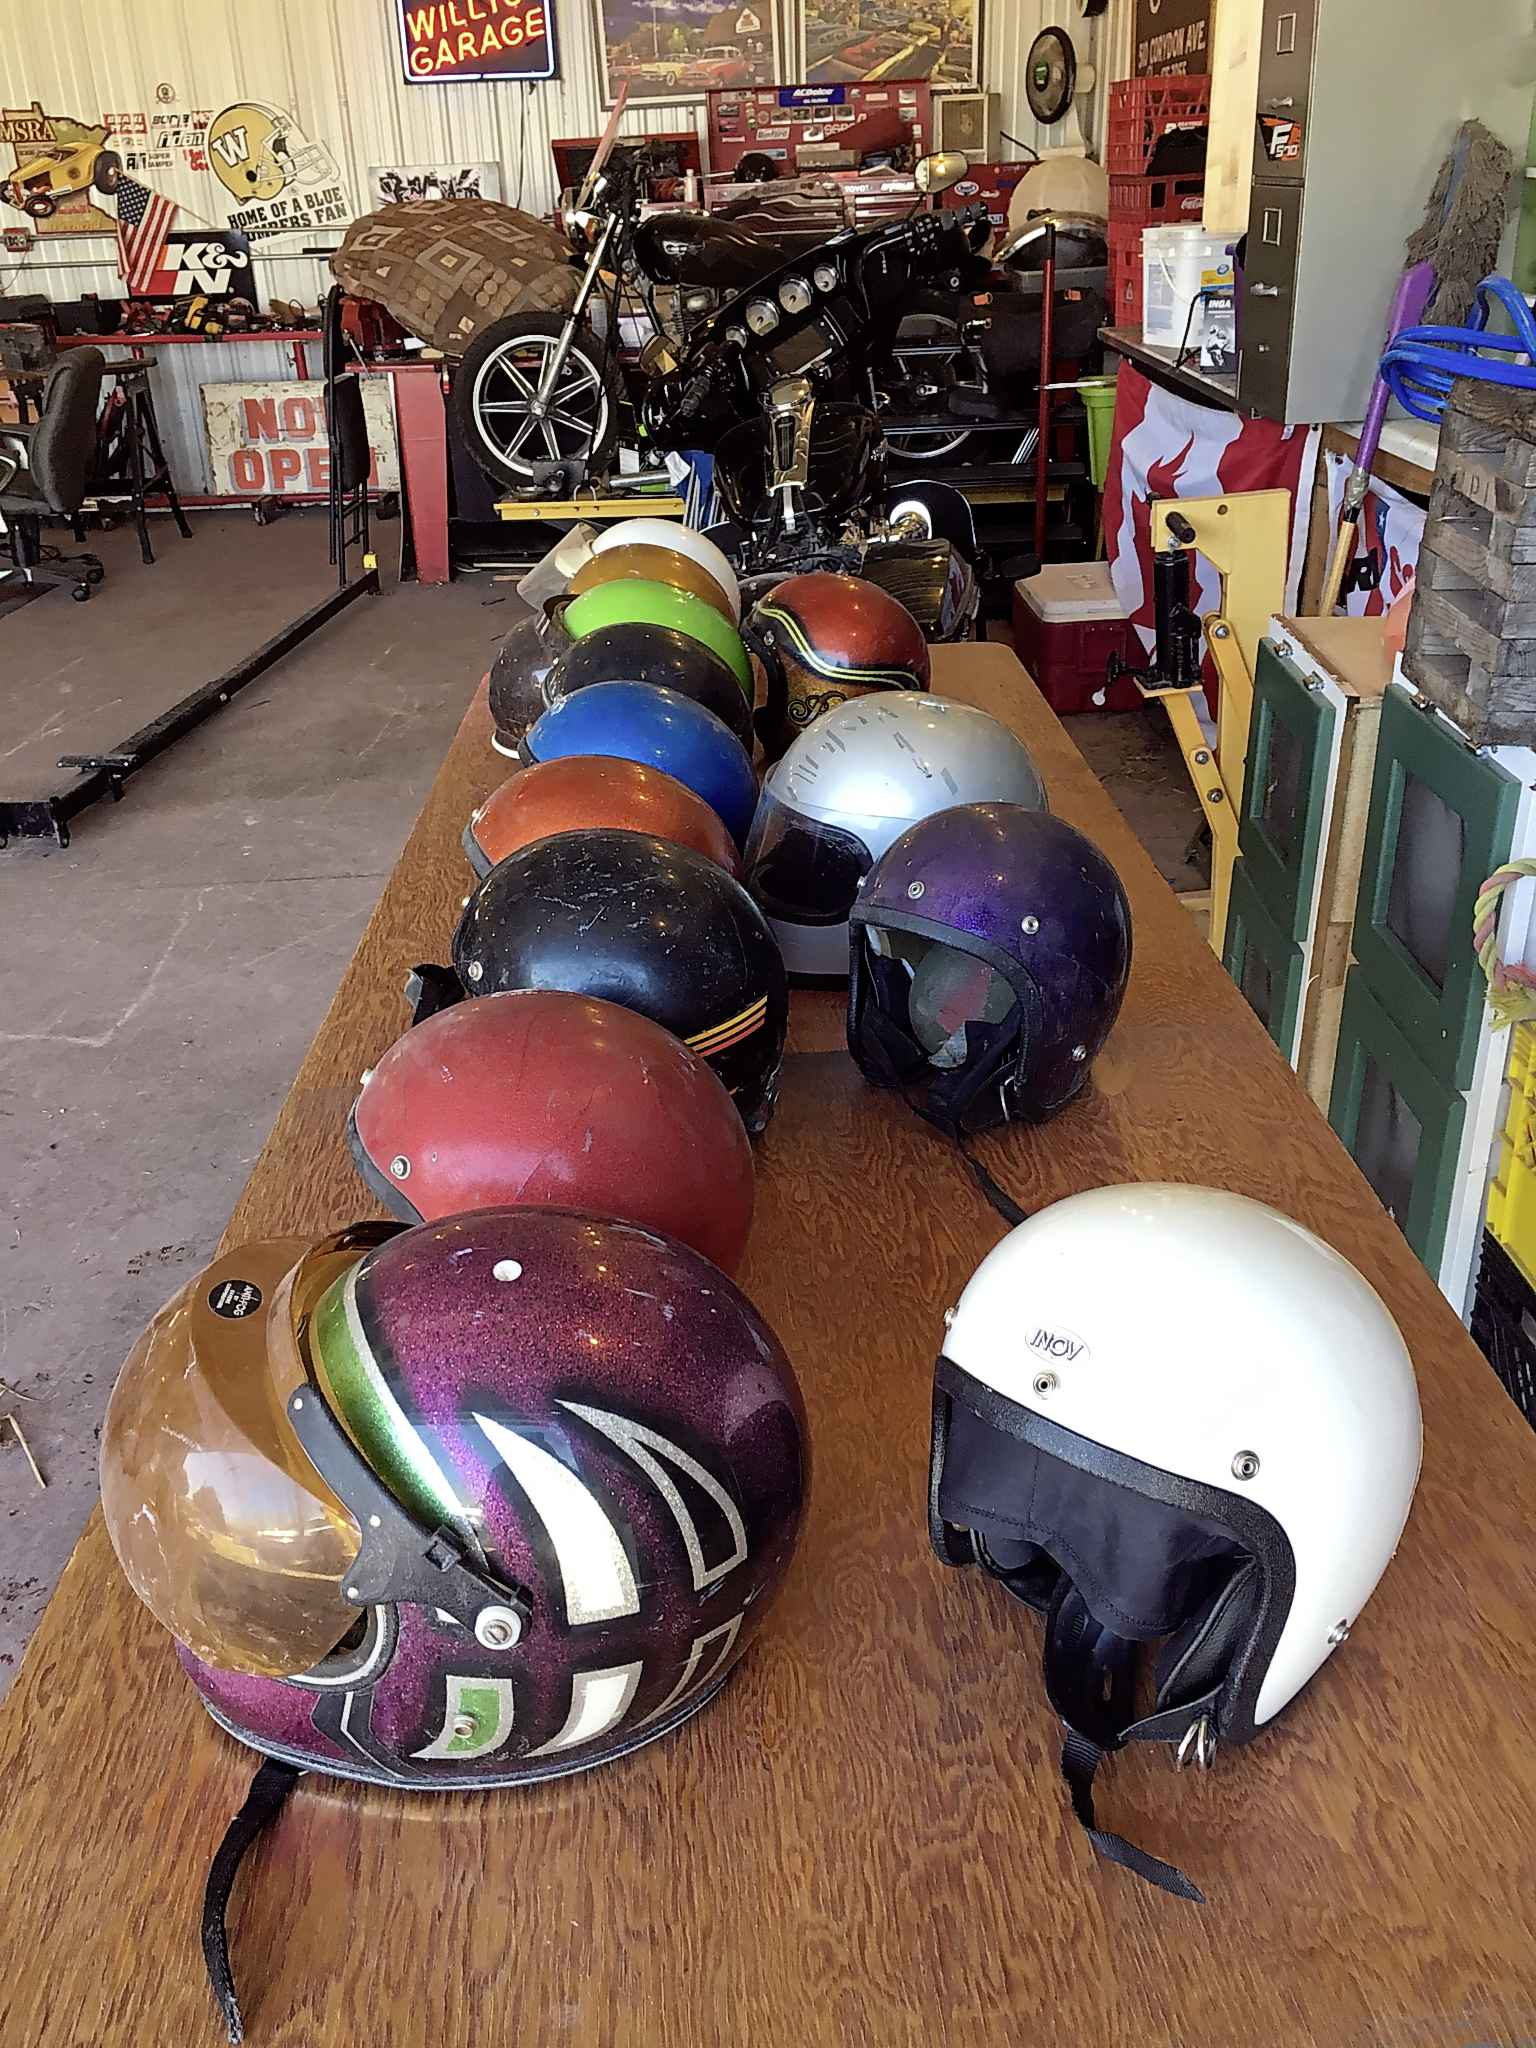 Willy also has a helmet collection. (Willy Williamson / Winnipeg Free Press)